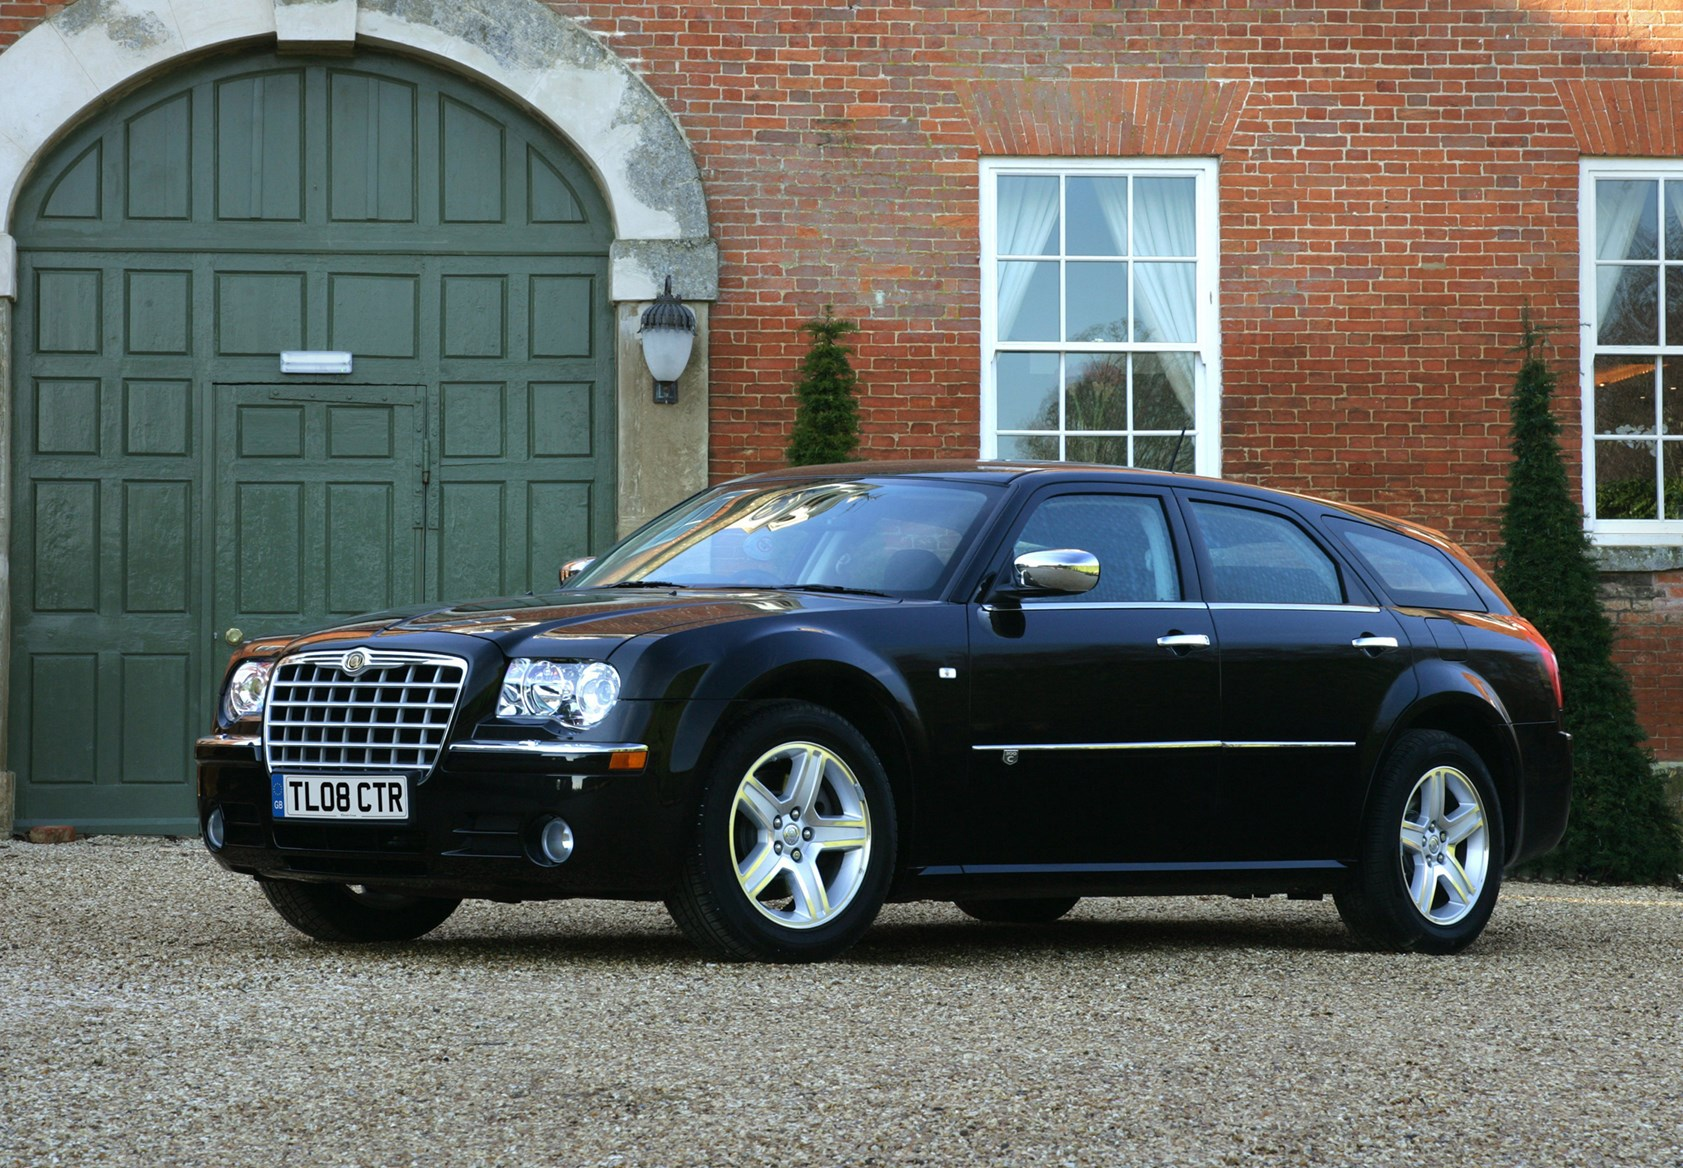 2006 Chrysler 300 Touring >> Chrysler 300C Touring Review (2006 - 2010) | Parkers